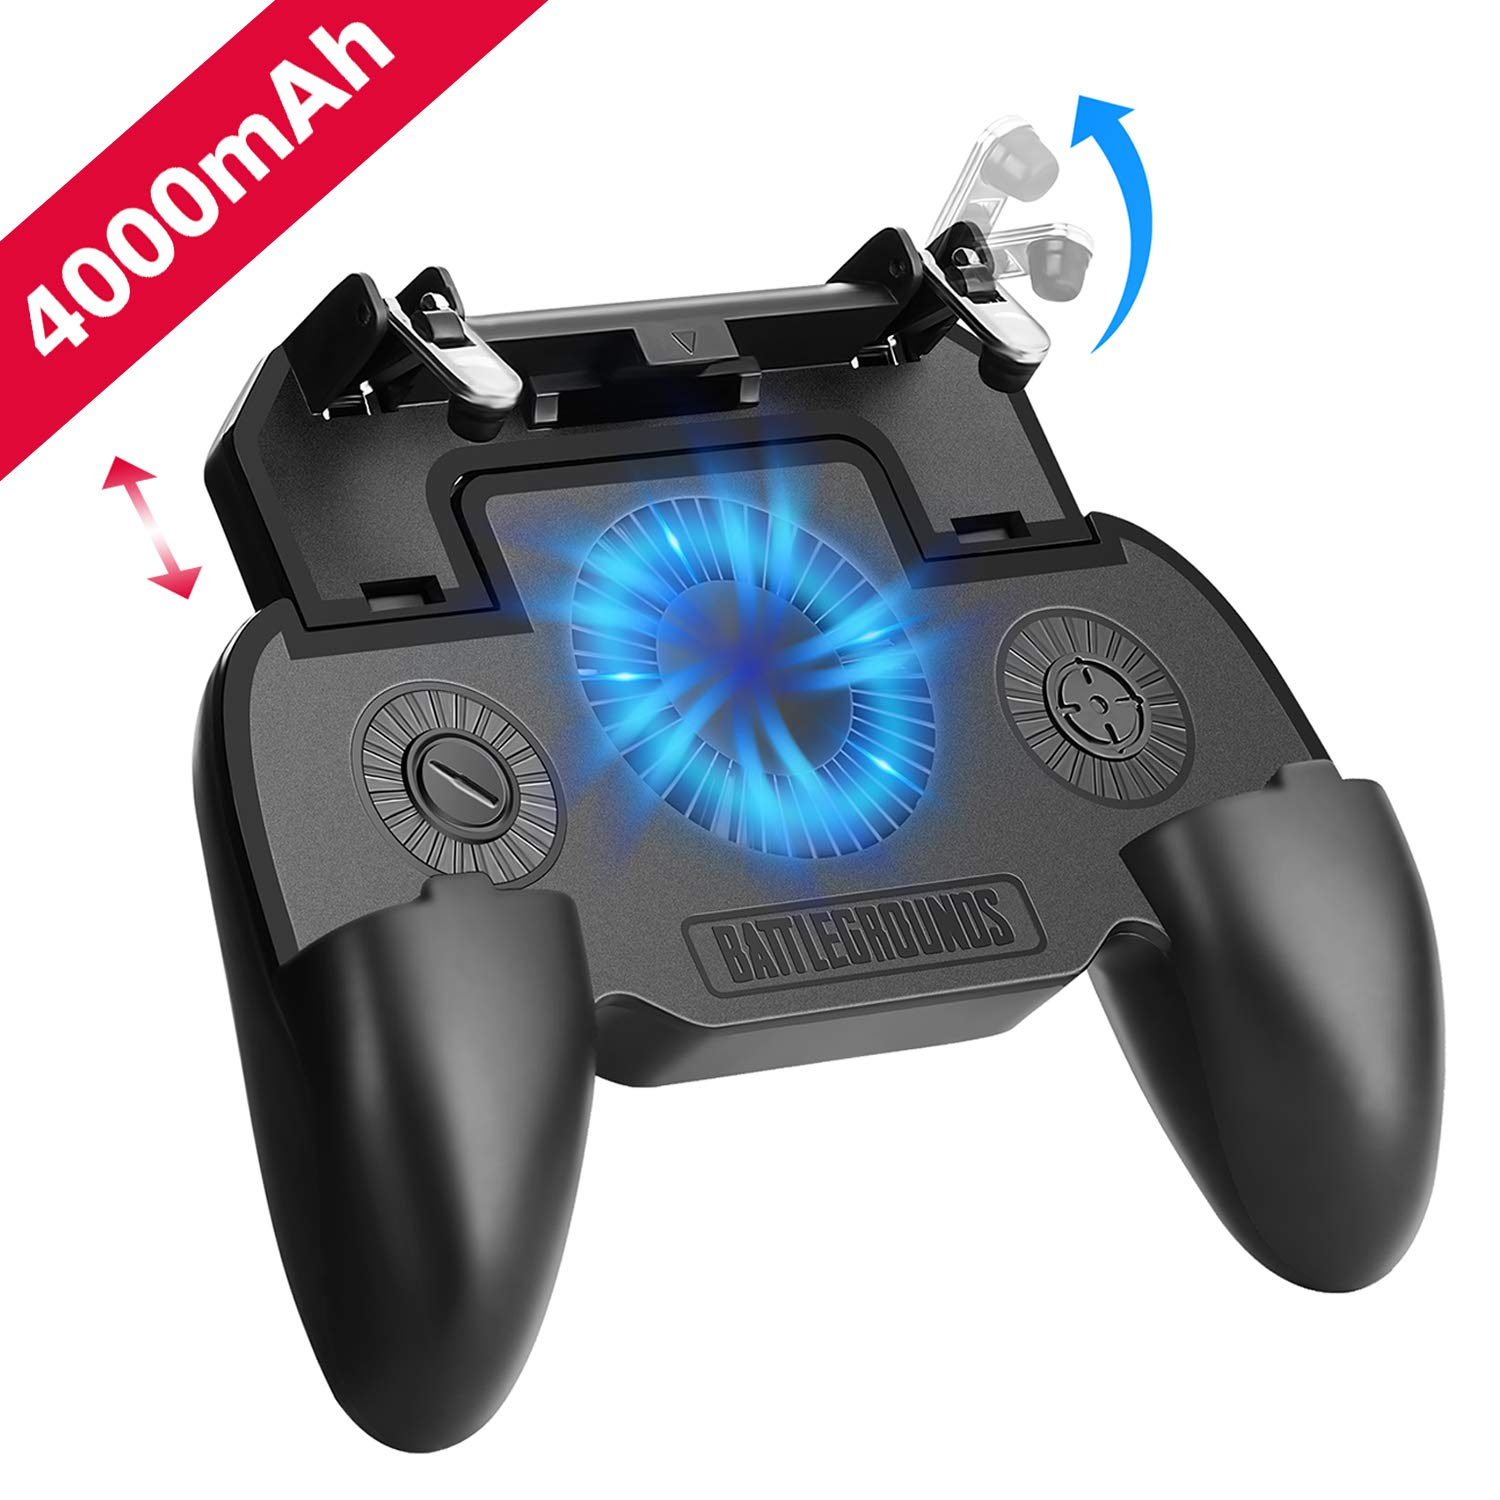 """Mobile Game Controller with 4000mAh Power Bank and Cooling Fan, PUBG Mobile Controller Gamepad L1 R1 Aim and Shoot Trigger, Joystick Remote Grip for 4.7-6.5"""" iPhone Android iOS Phone Accessories"""